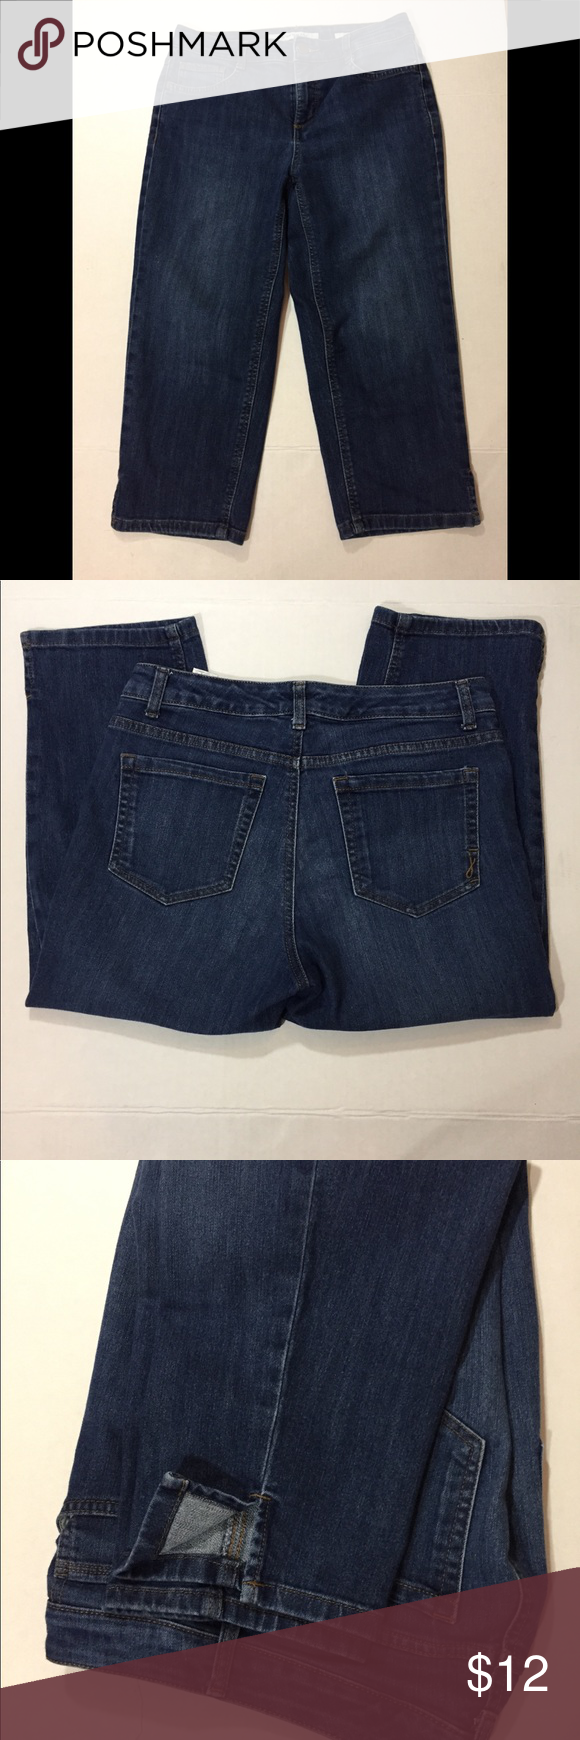 Jones New York Denim Soho Crops Size 4 Women Jones New York Clothes Design Washed Jeans